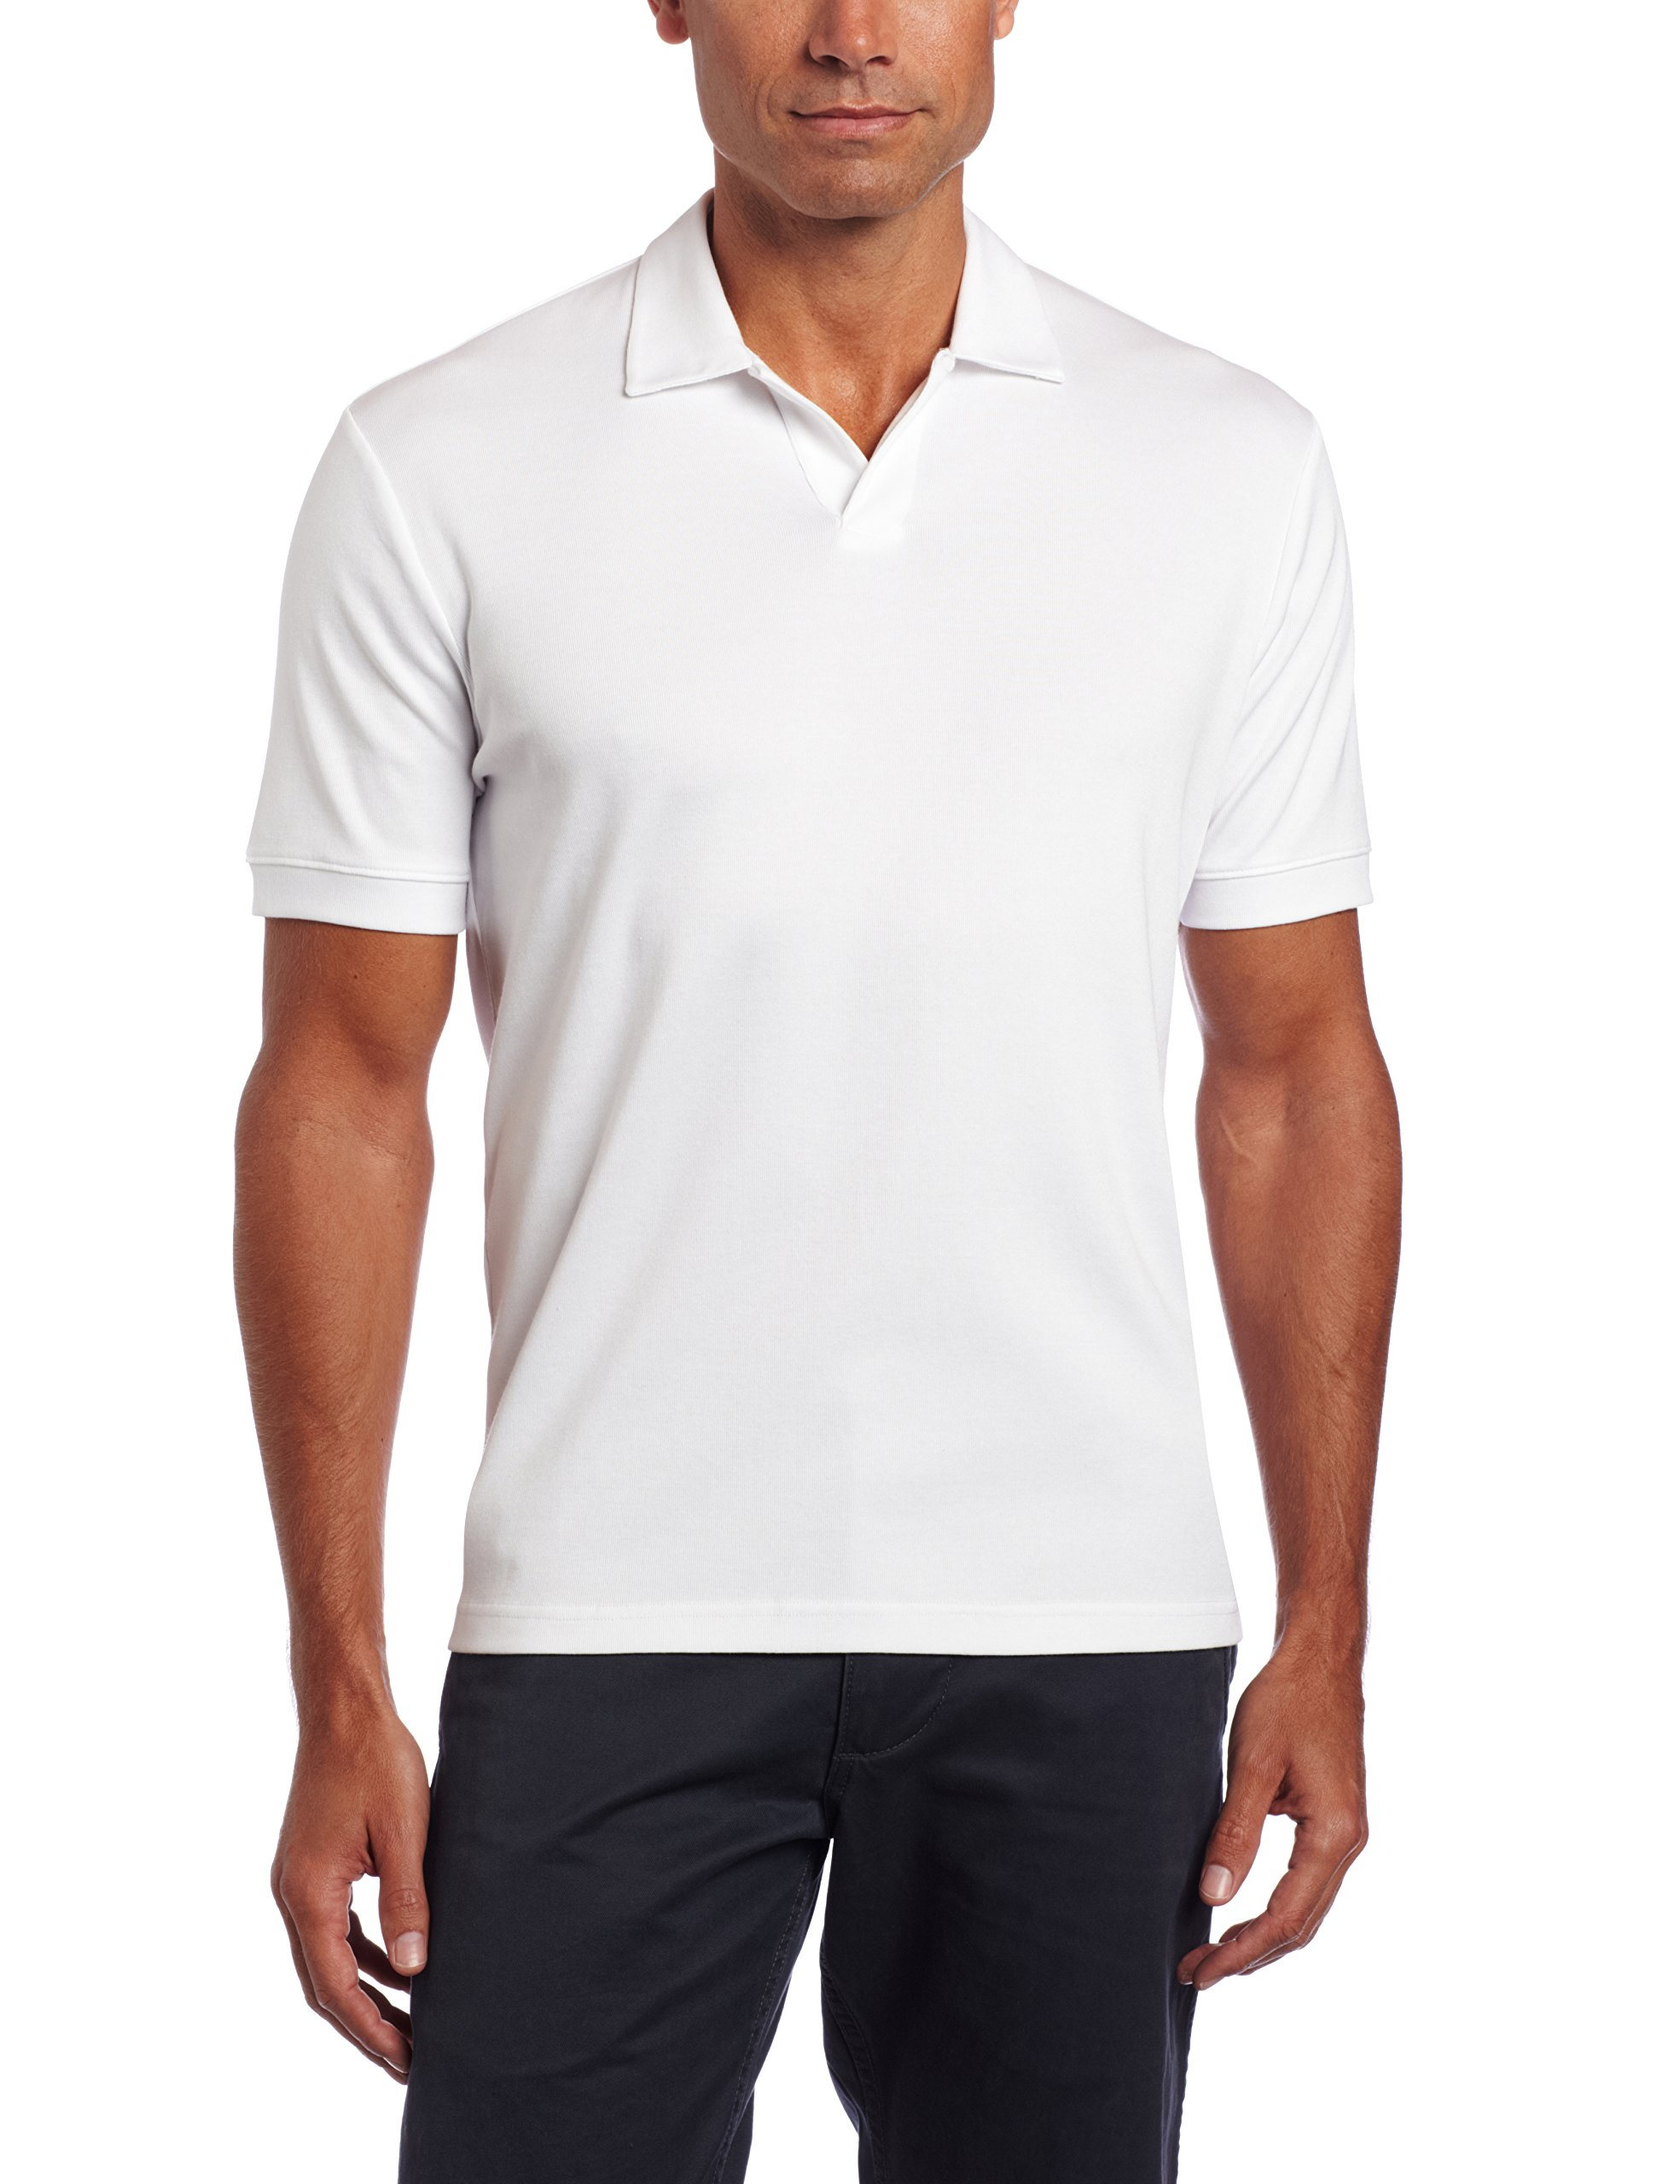 Perry Ellis Men's Short Sleeve Cotton Blend Open Polo, Bright White, XX-Large by Perry Ellis (Image #1)